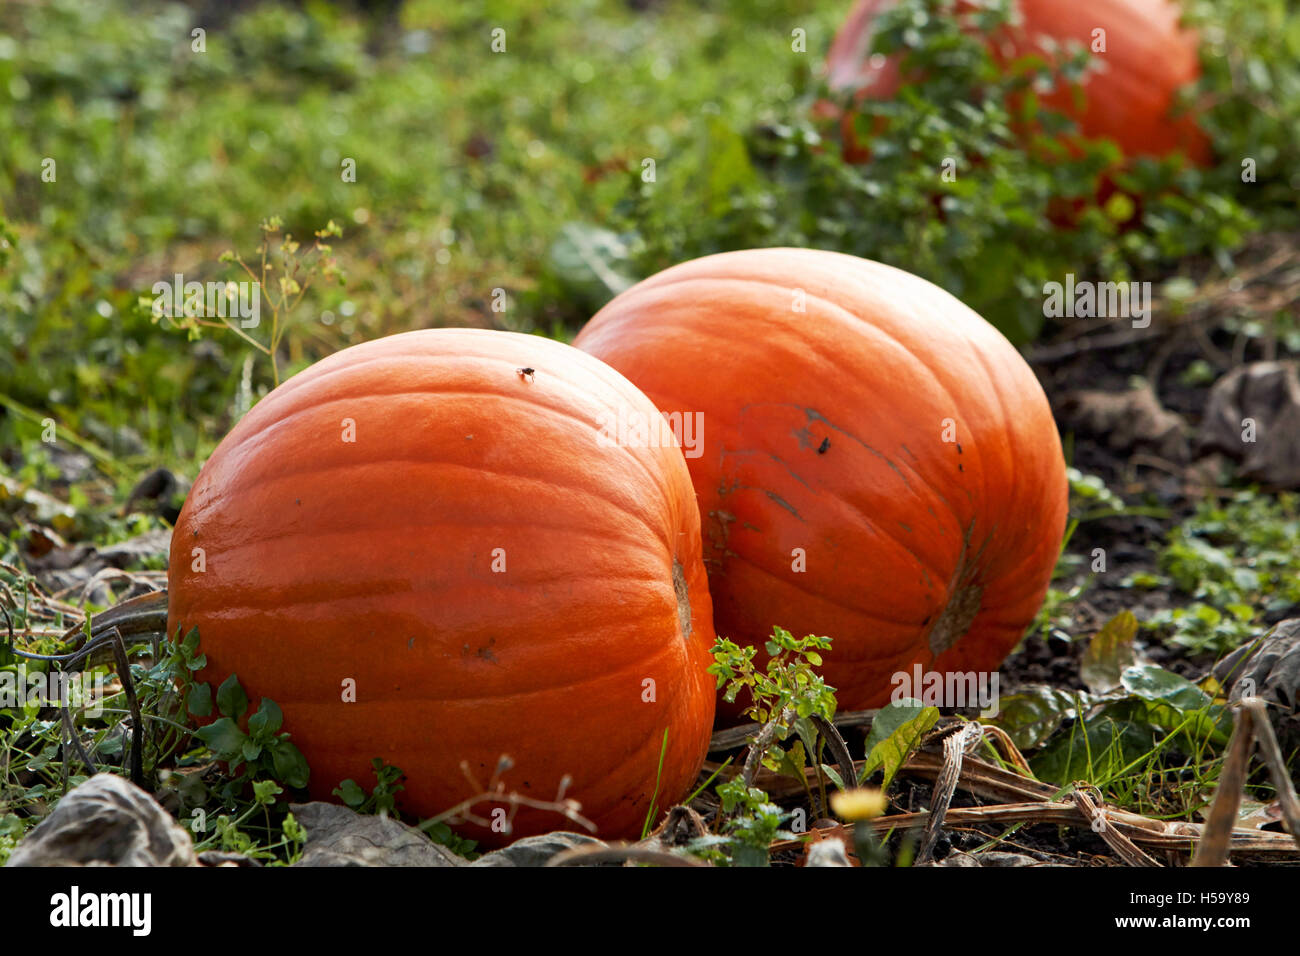 pumpkins growing in a pumpkin patch field in shropshire england ready for halloween - Stock Image